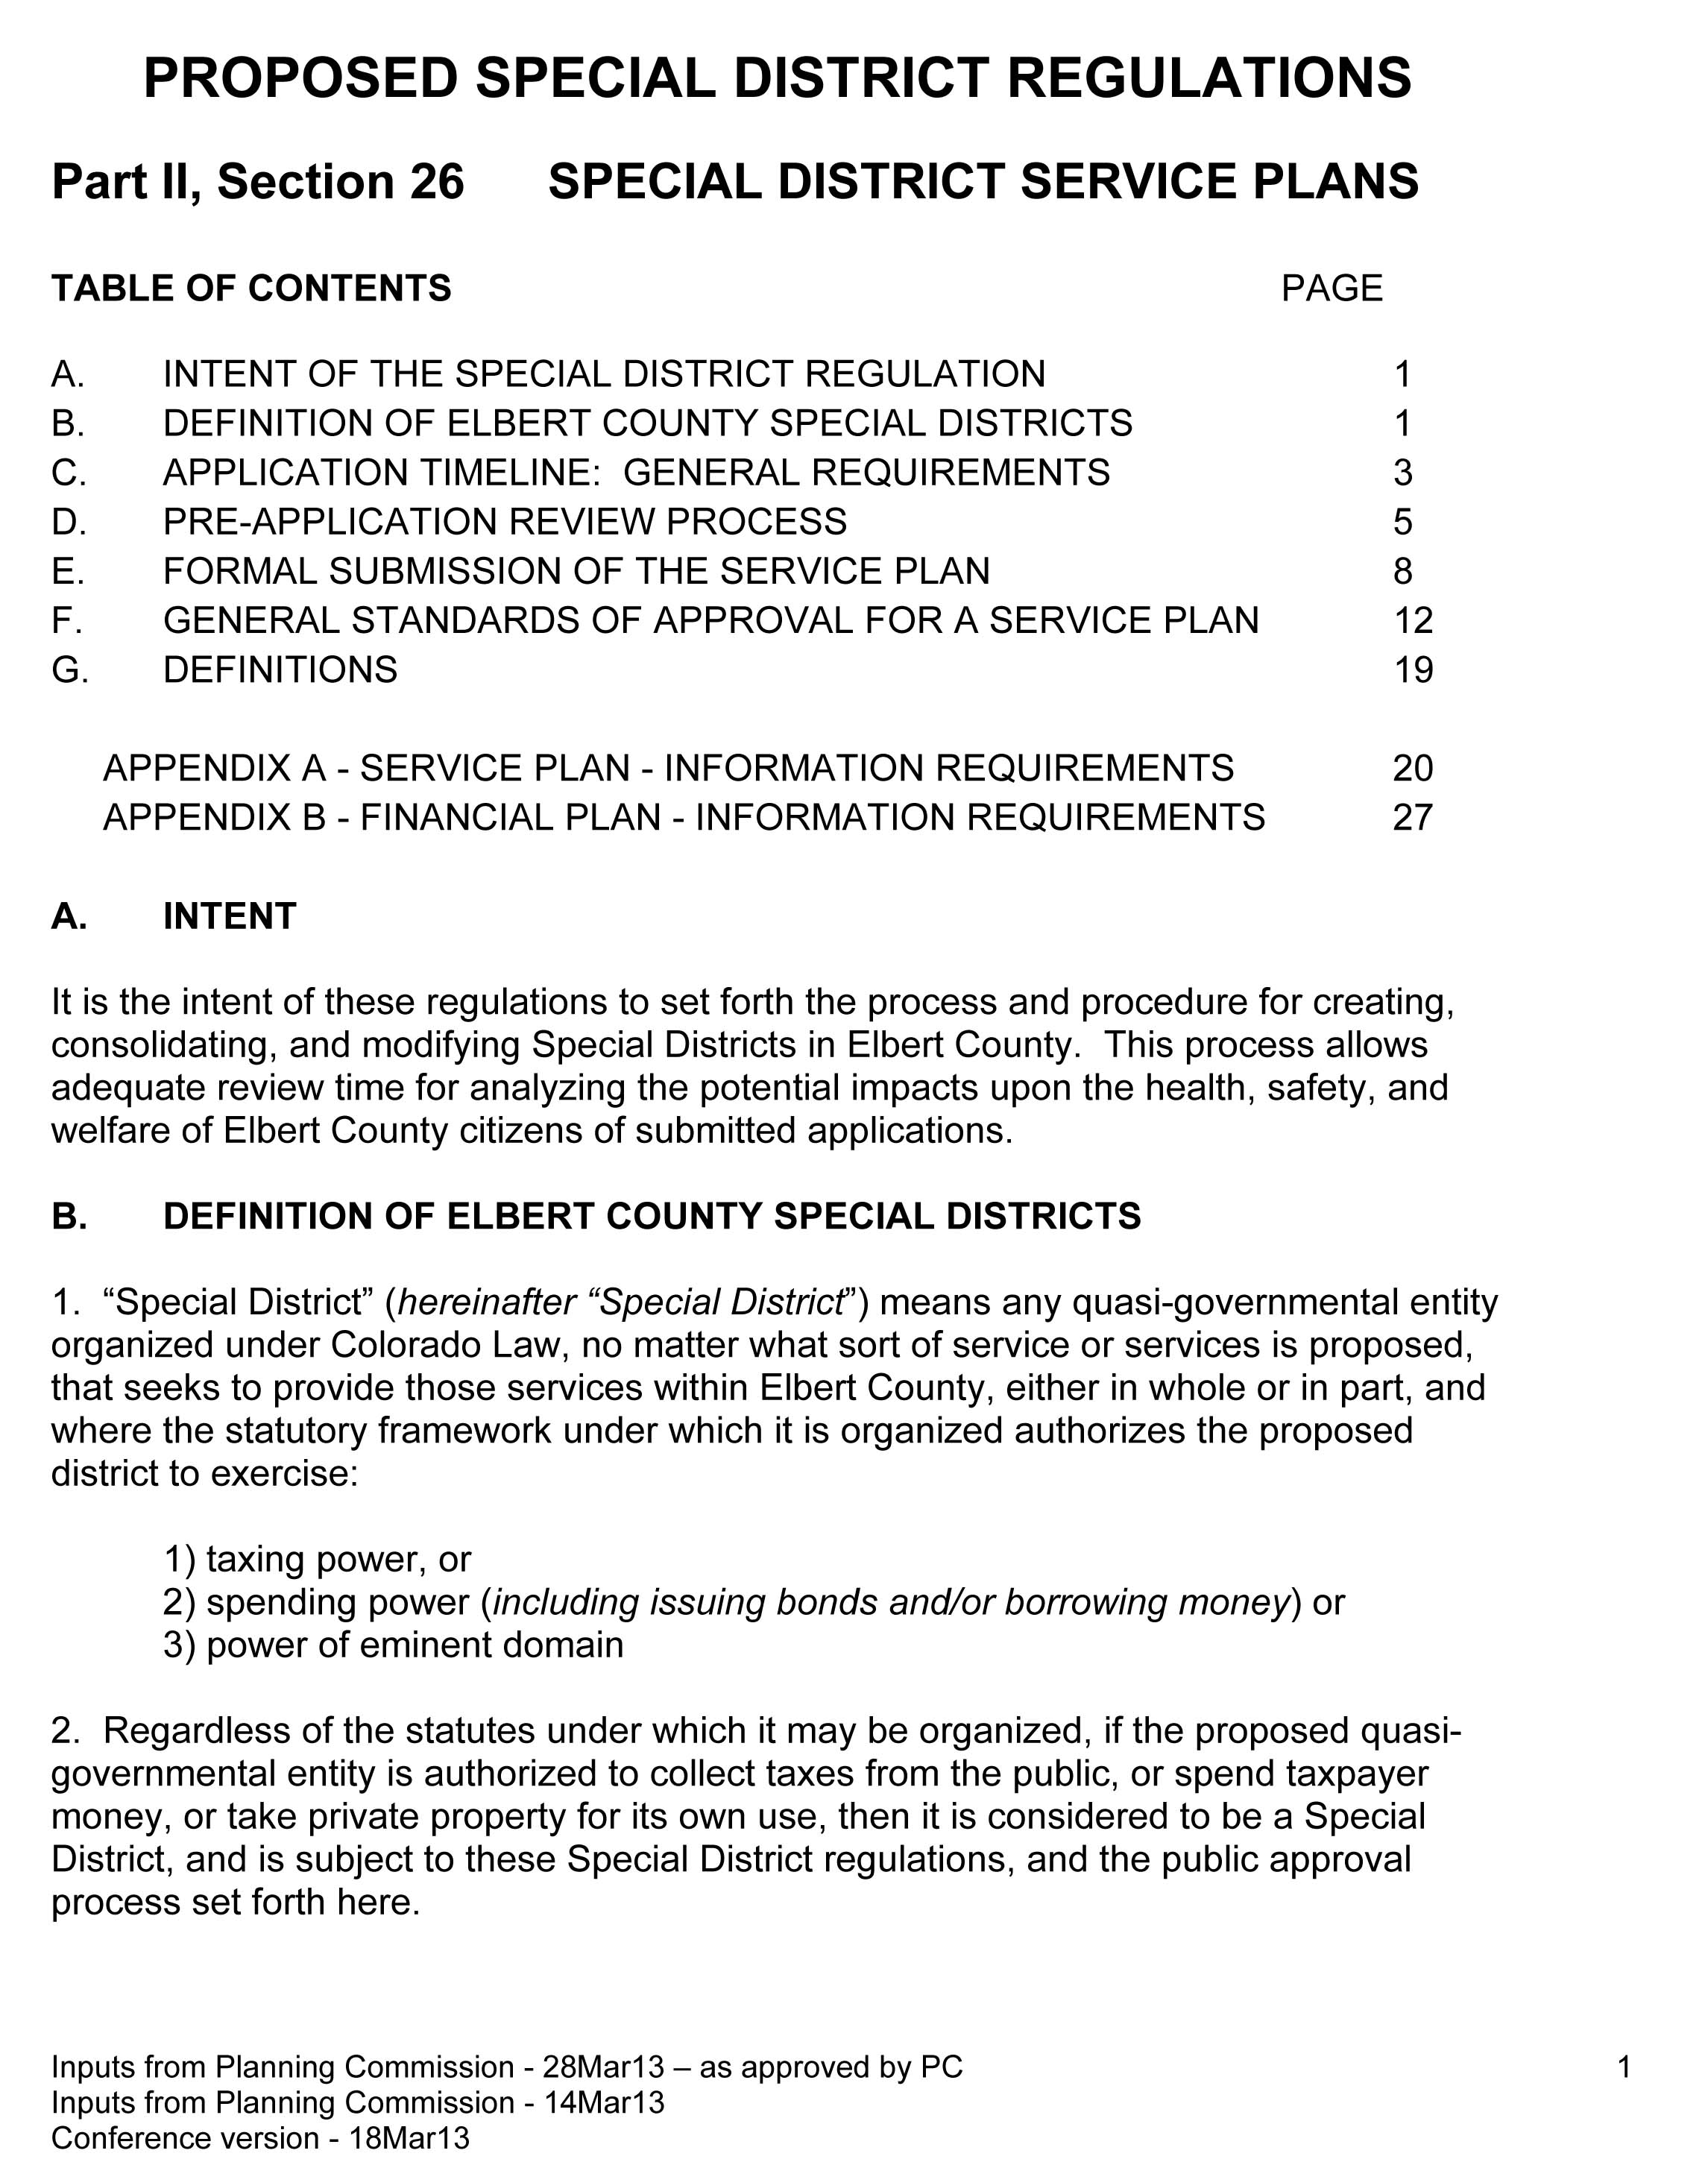 Reflects as approved by PC 13048 BOCC edited version xii Ric M_ Special District Reg_Conference version of 10Apr13 for BOCC hearing_3Apr13-1